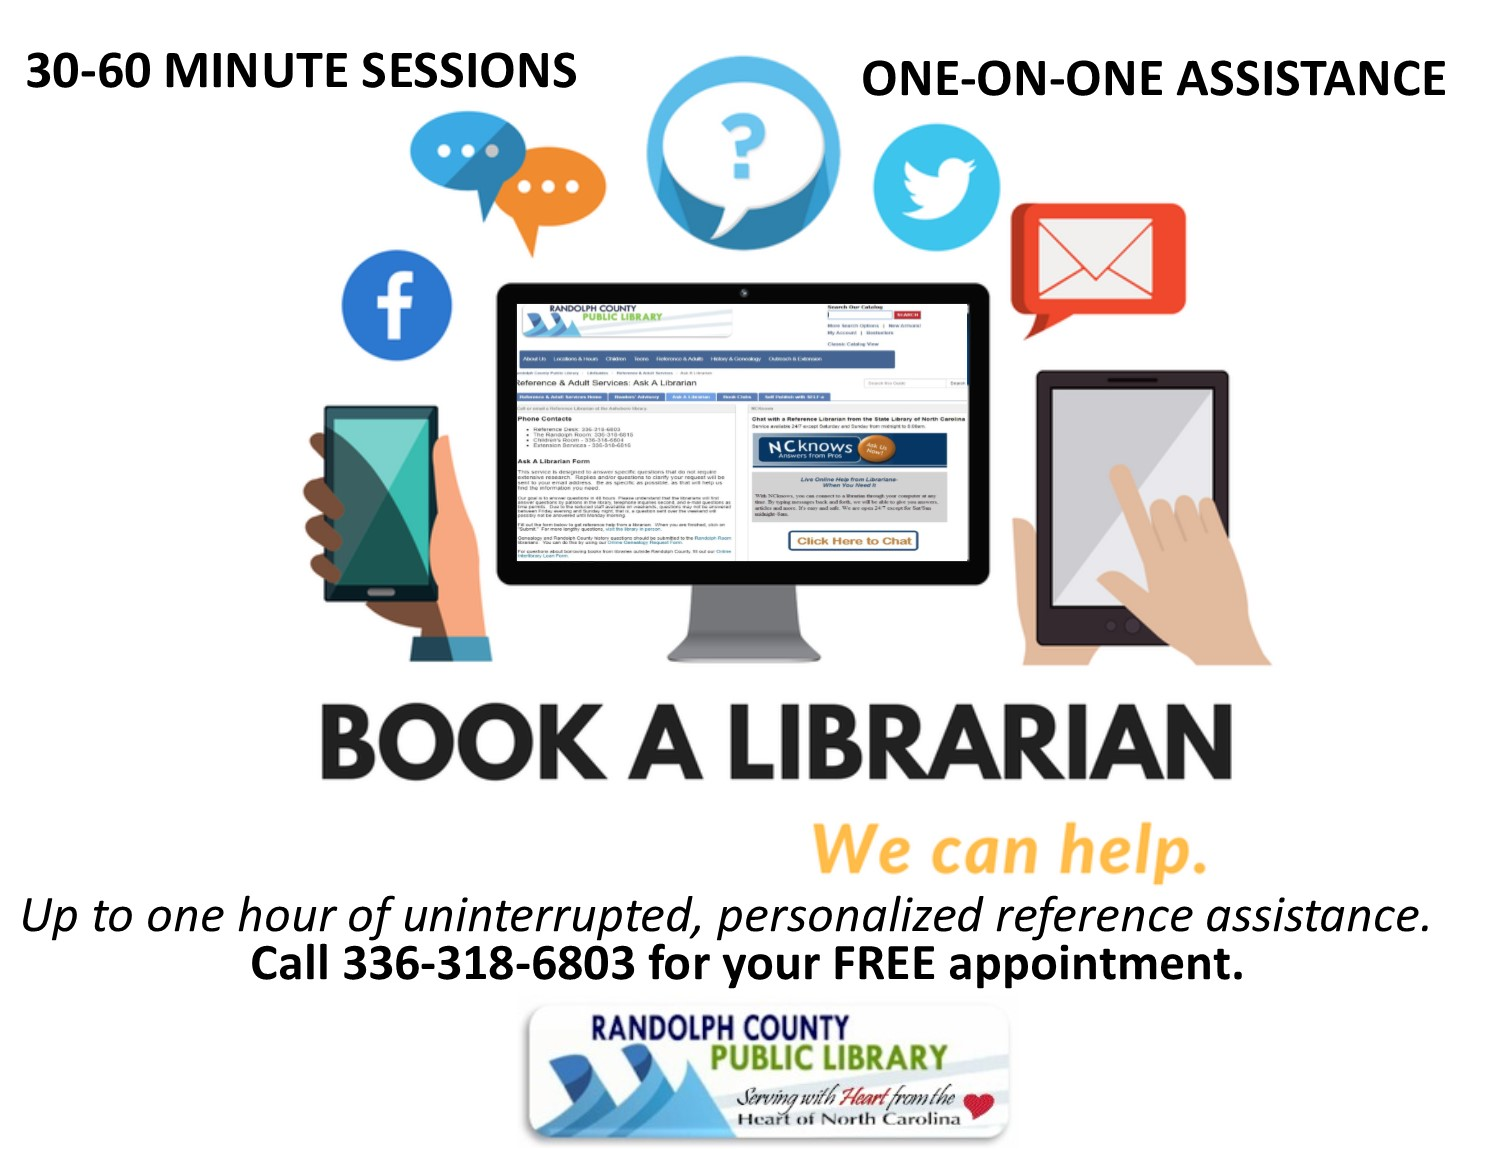 Book a librarian for up to 1 hour of uninterrupted personalized reference assistance at the Asheboro library. FREE!